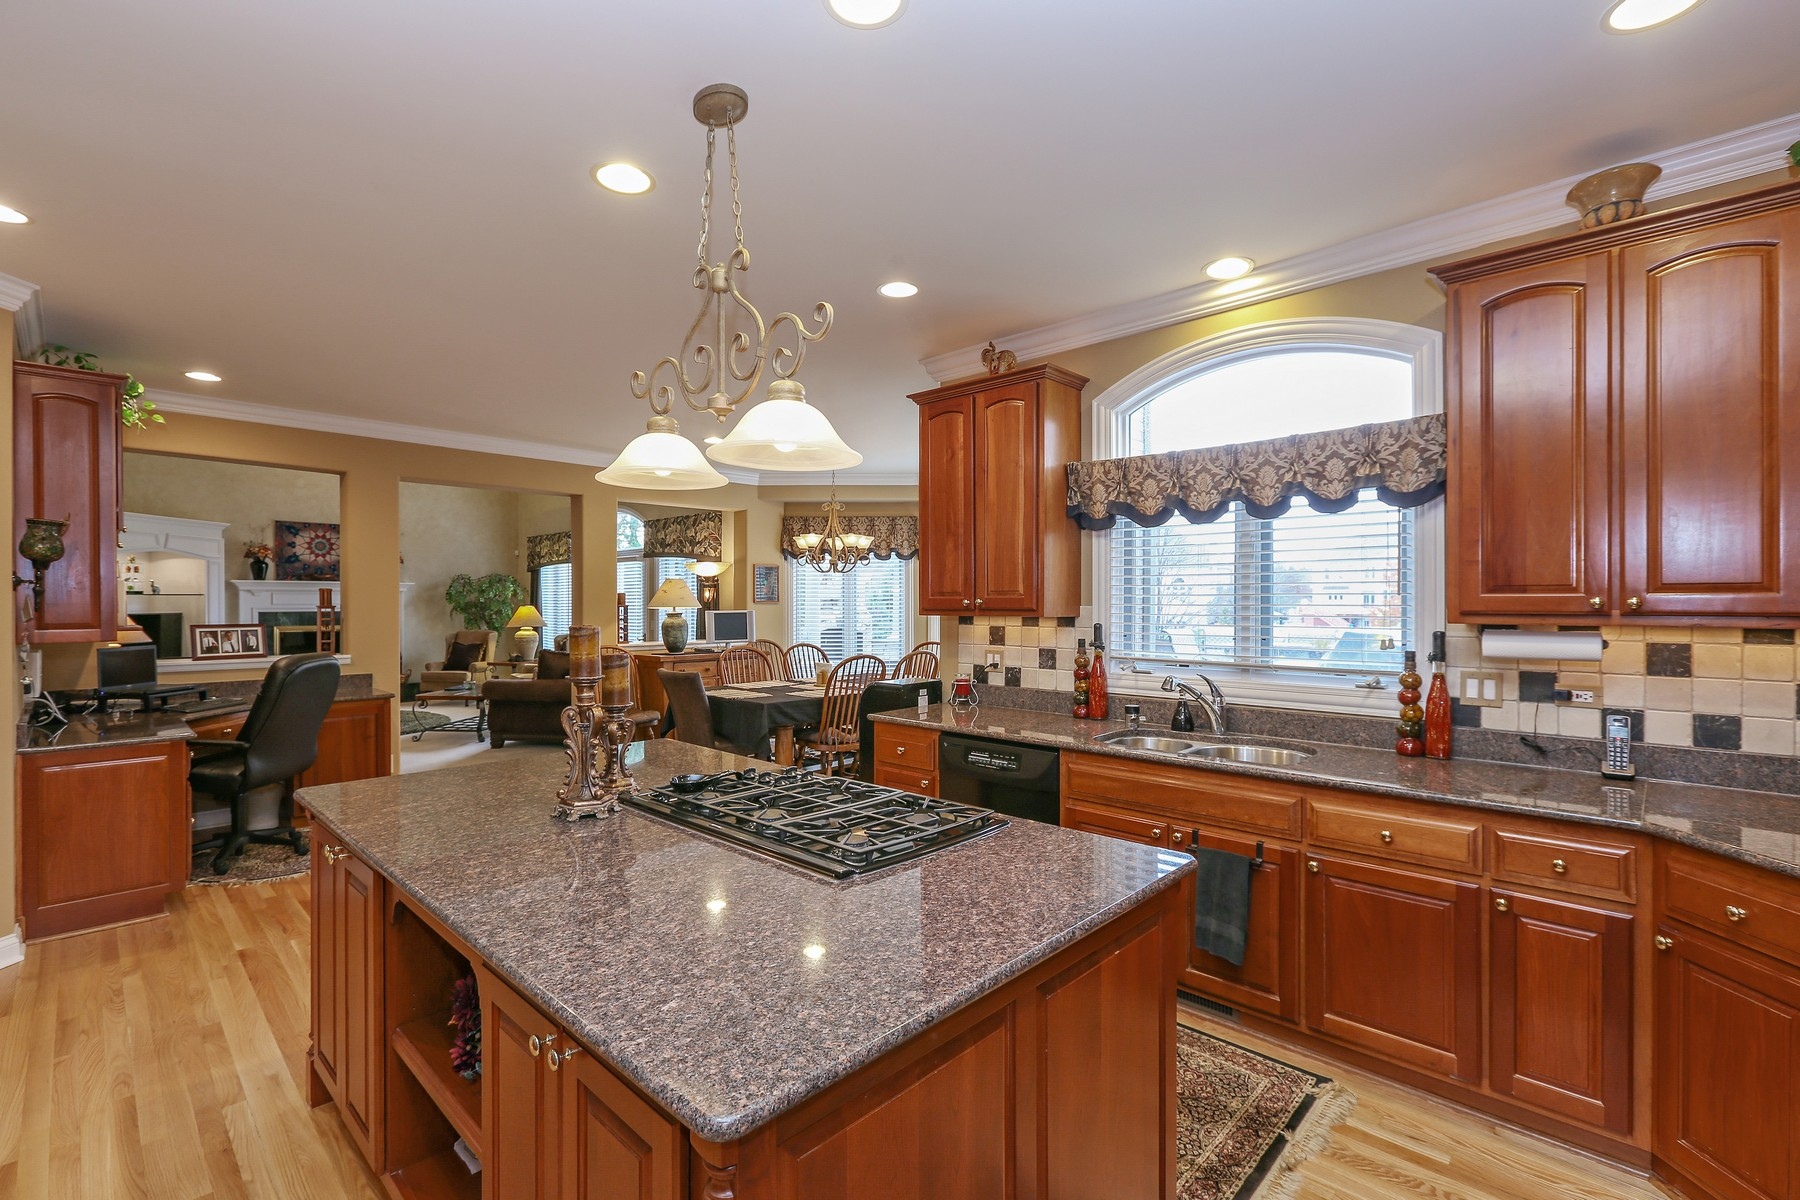 Additional photo for property listing at Fabulous Location Sited High Looking Down The Waterway 21556 W Swan Court Kildeer, Illinois 60047 United States